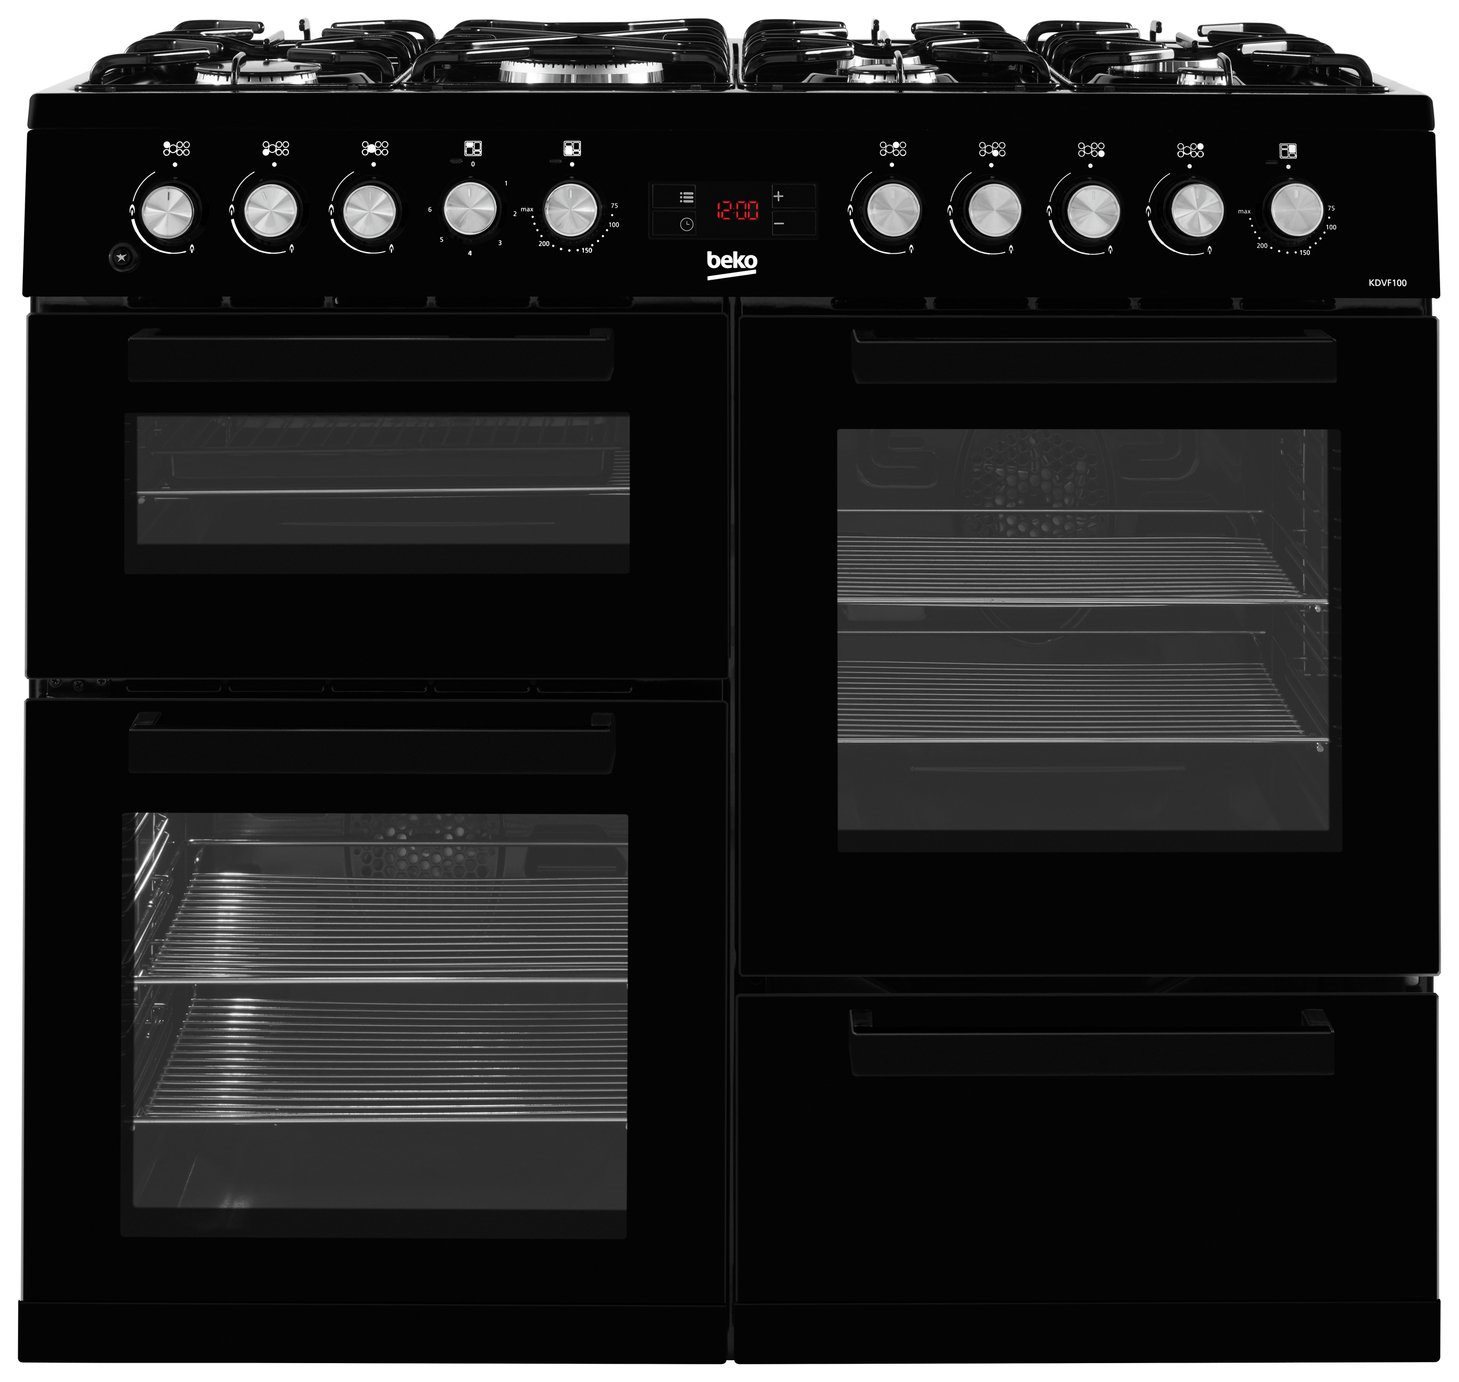 Beko KDVF100K 100cm Dual Fuel Range Cooker - Black from Beko